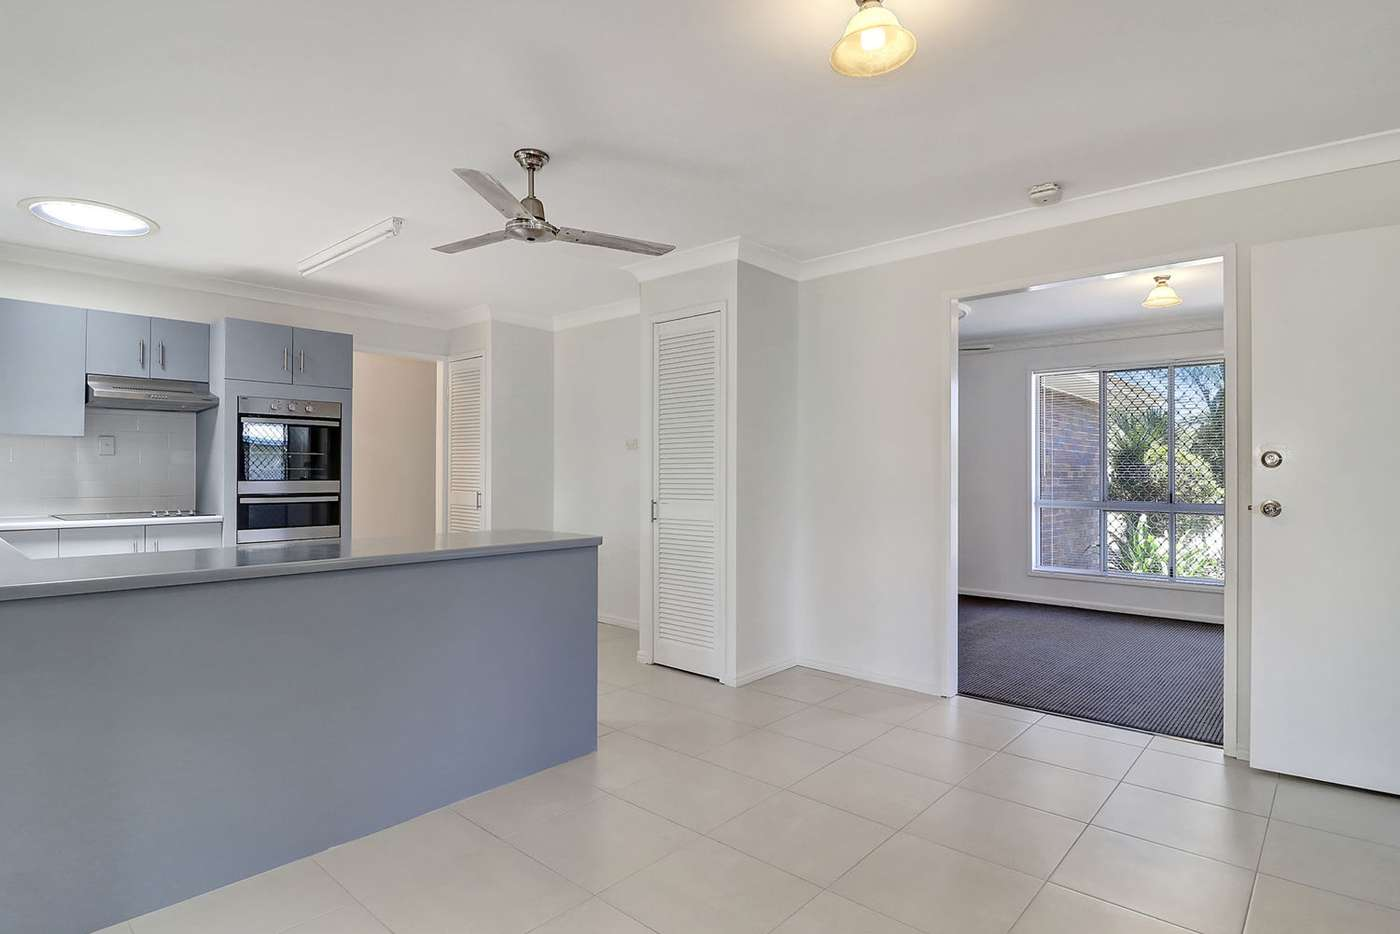 Sixth view of Homely house listing, 31 Nicholson Street, Emu Park QLD 4710